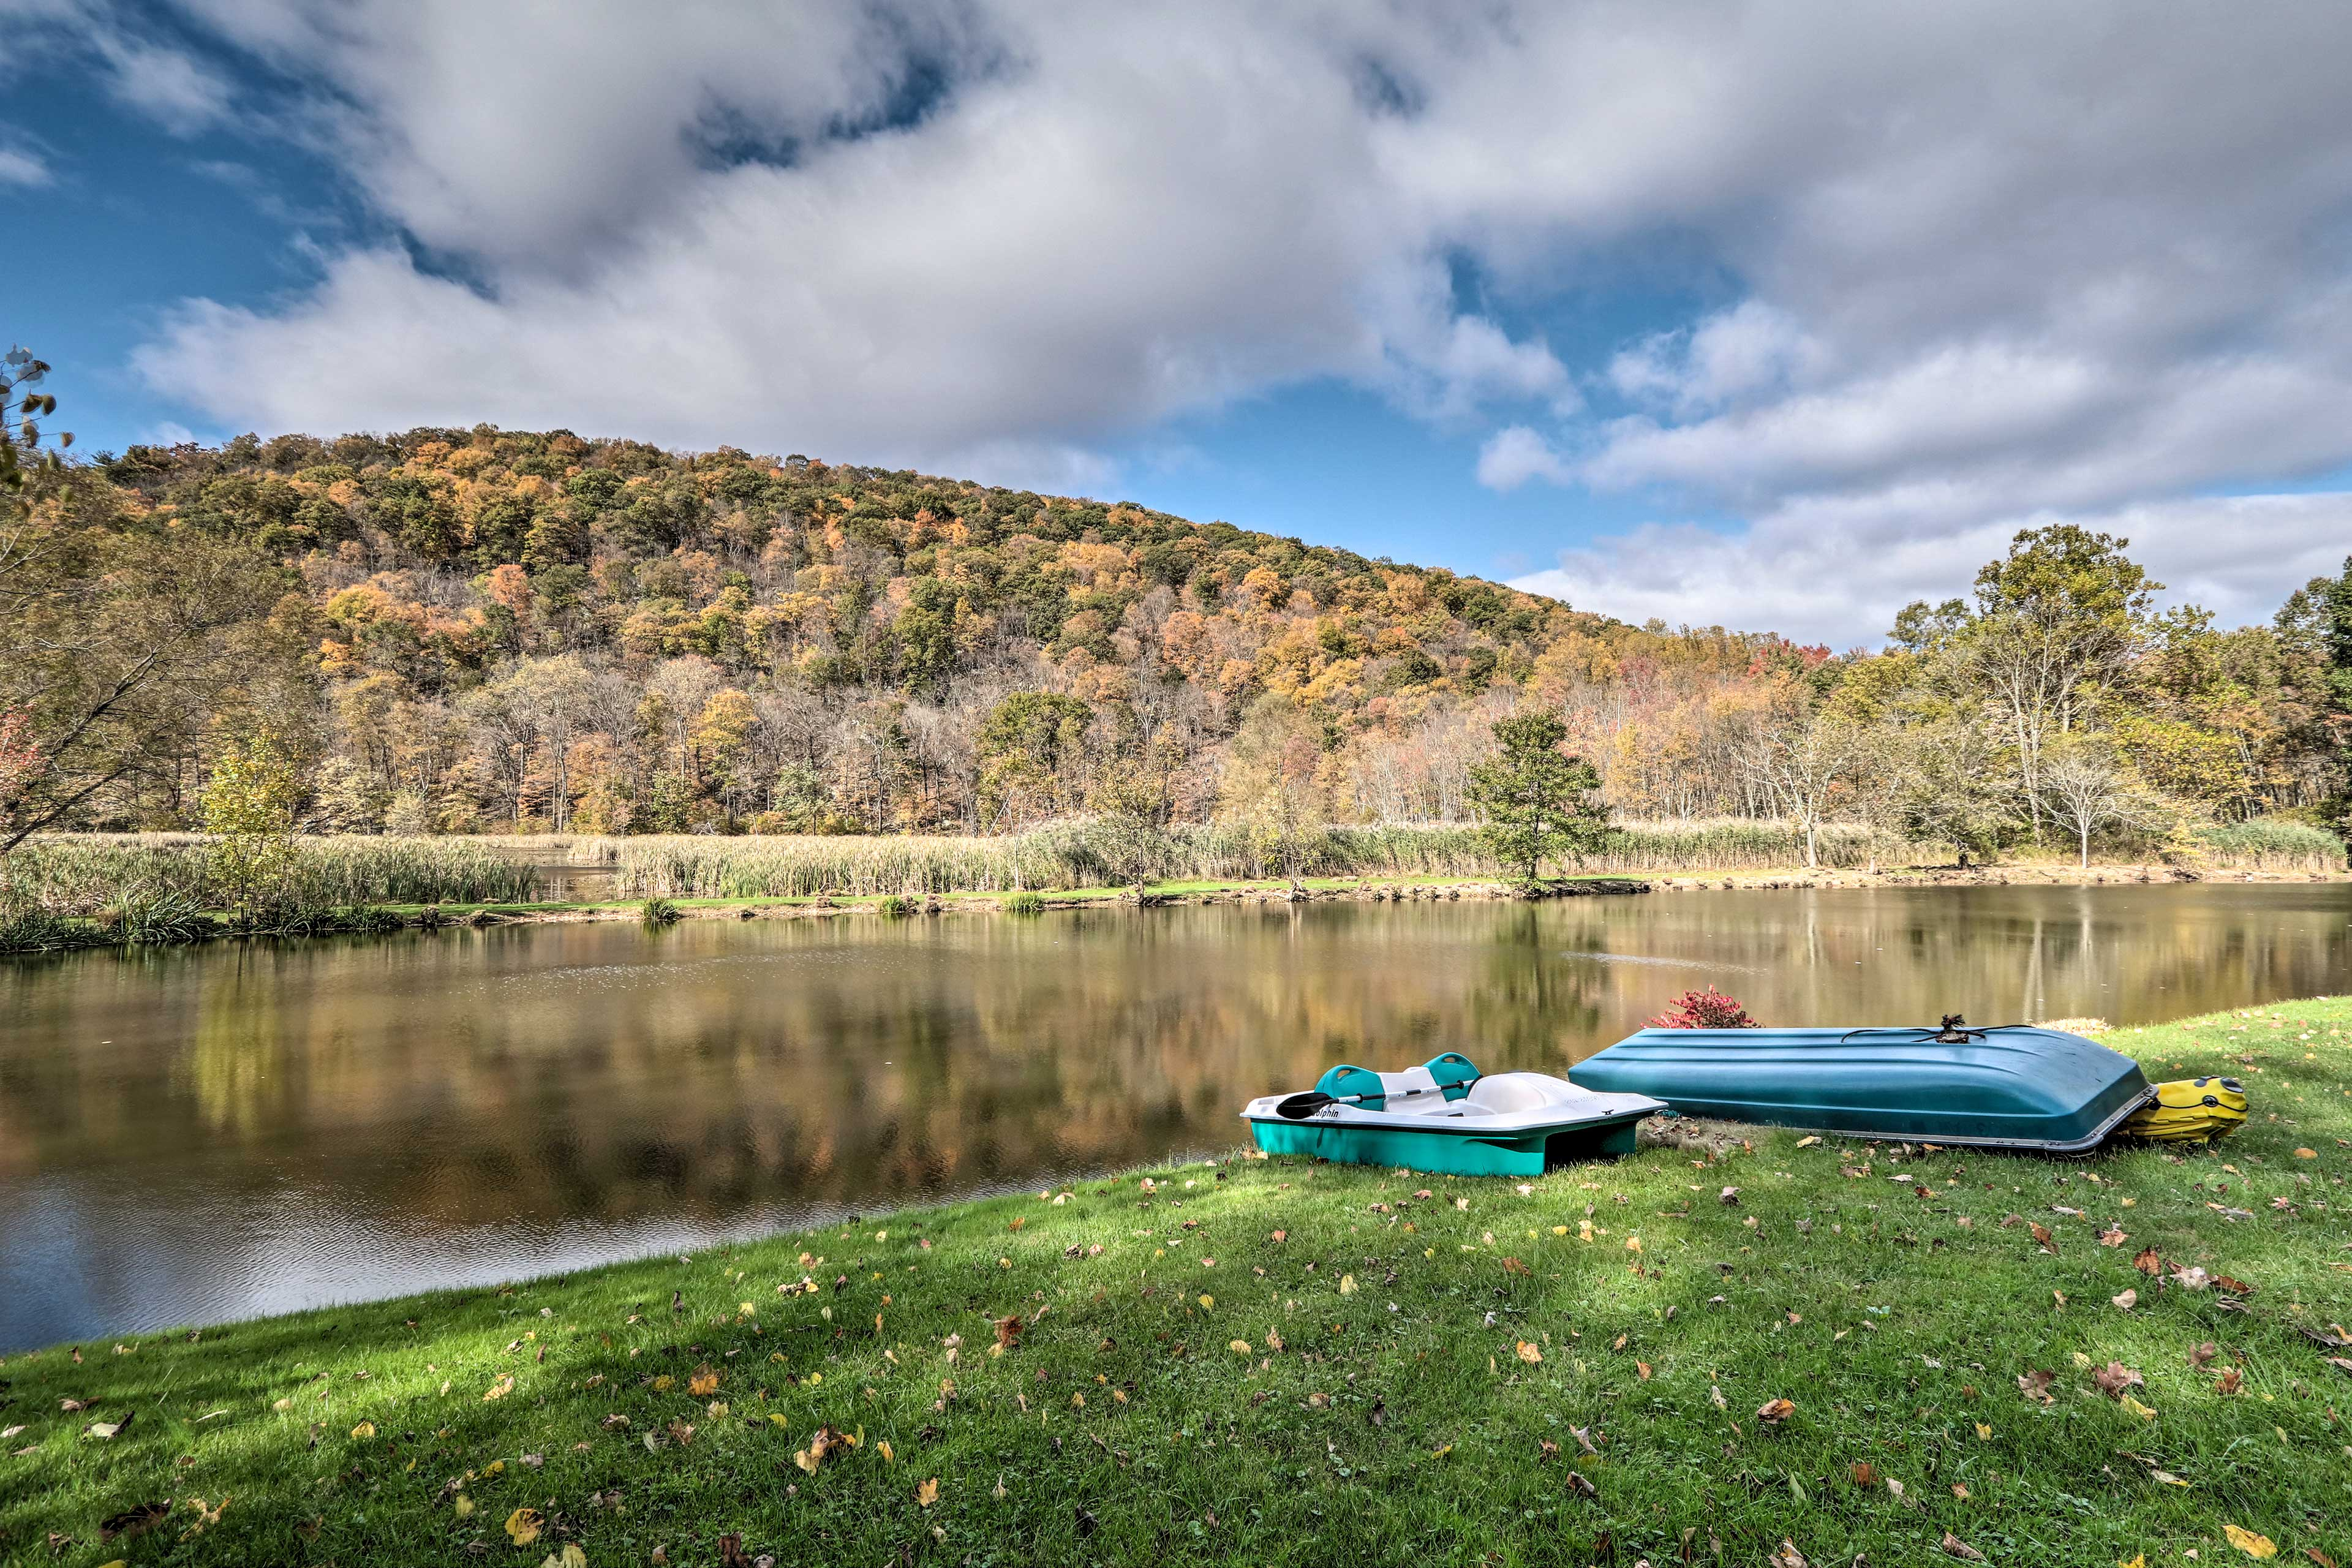 Spend lazy afternoons paddling out on the pond.